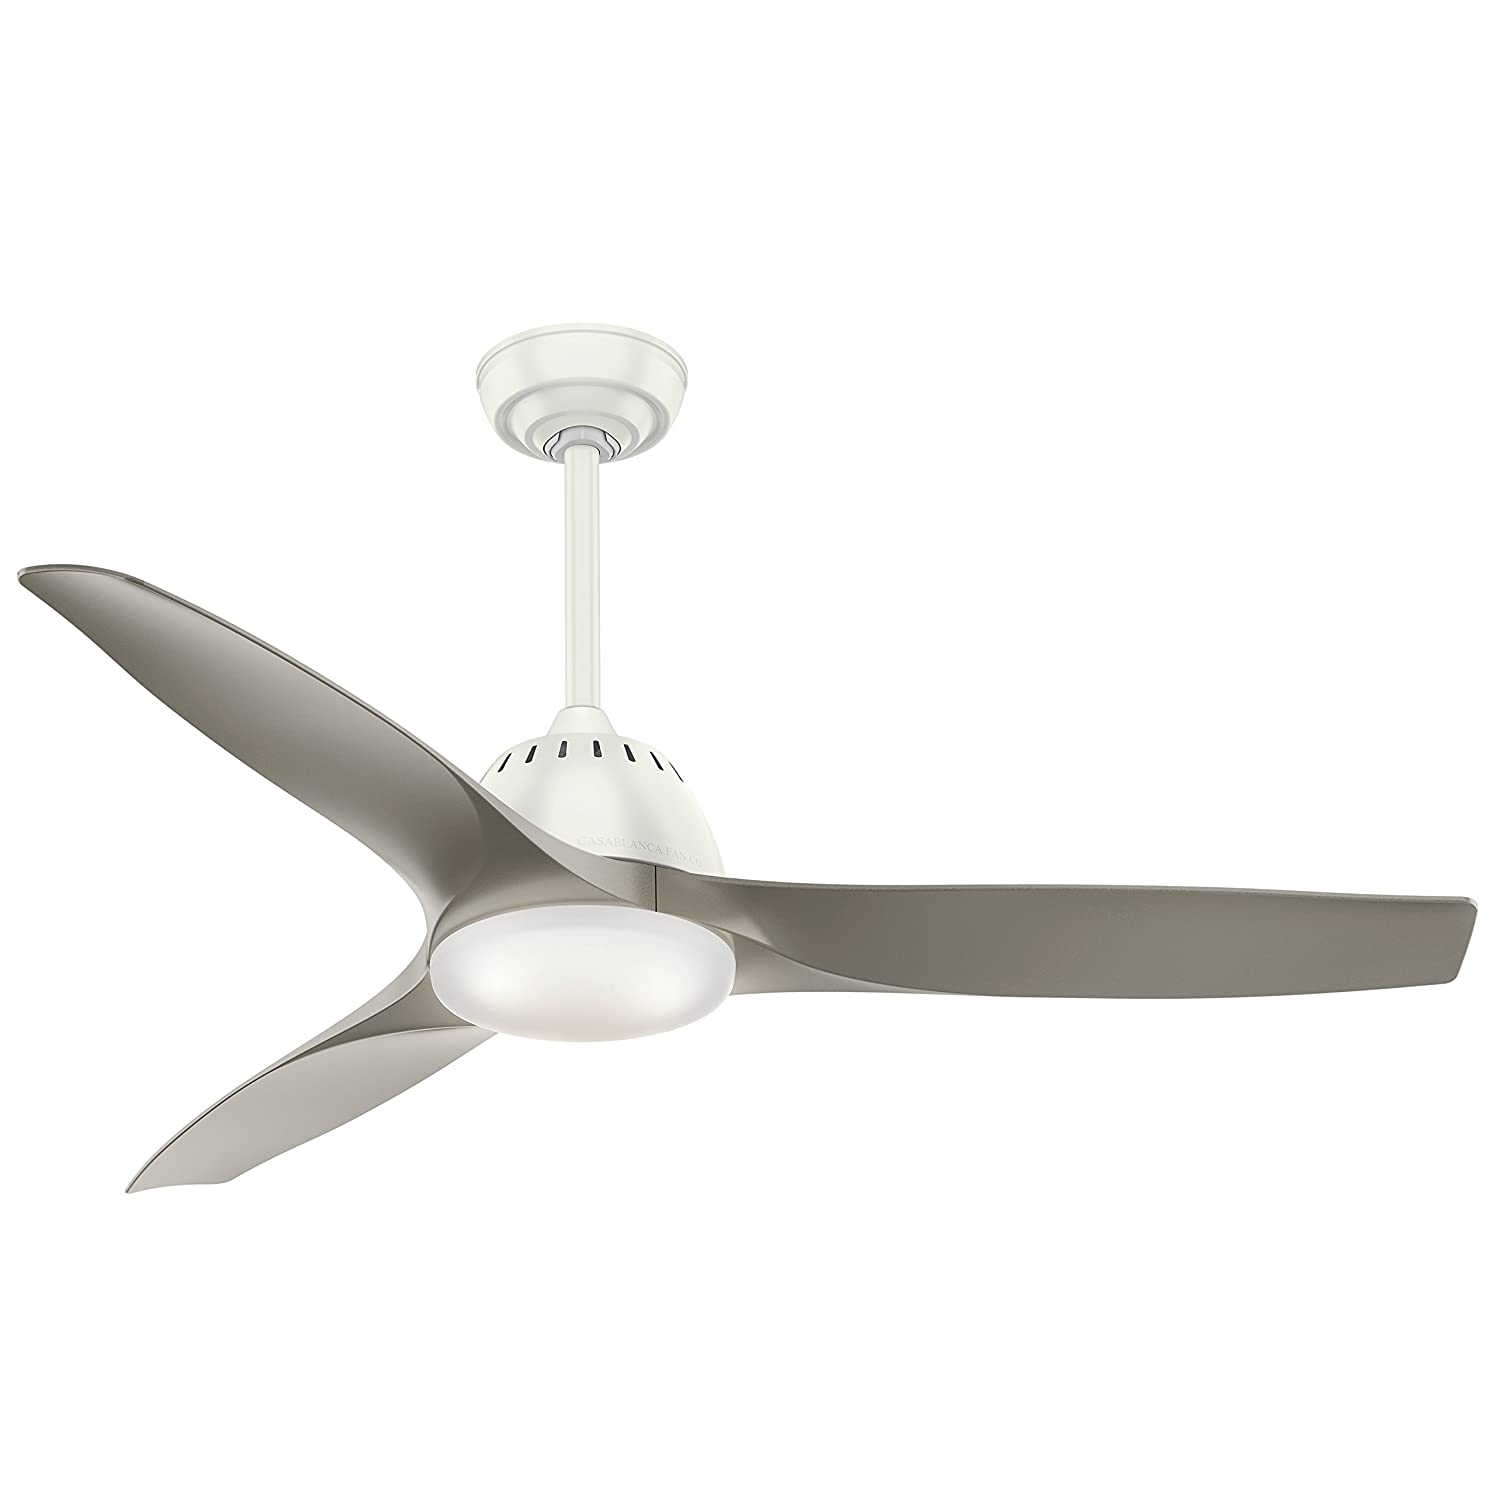 Casablanca Indoor Ceiling Fan with LED Light and Remote Control - Wisp 52 inch, Pewter, 59152